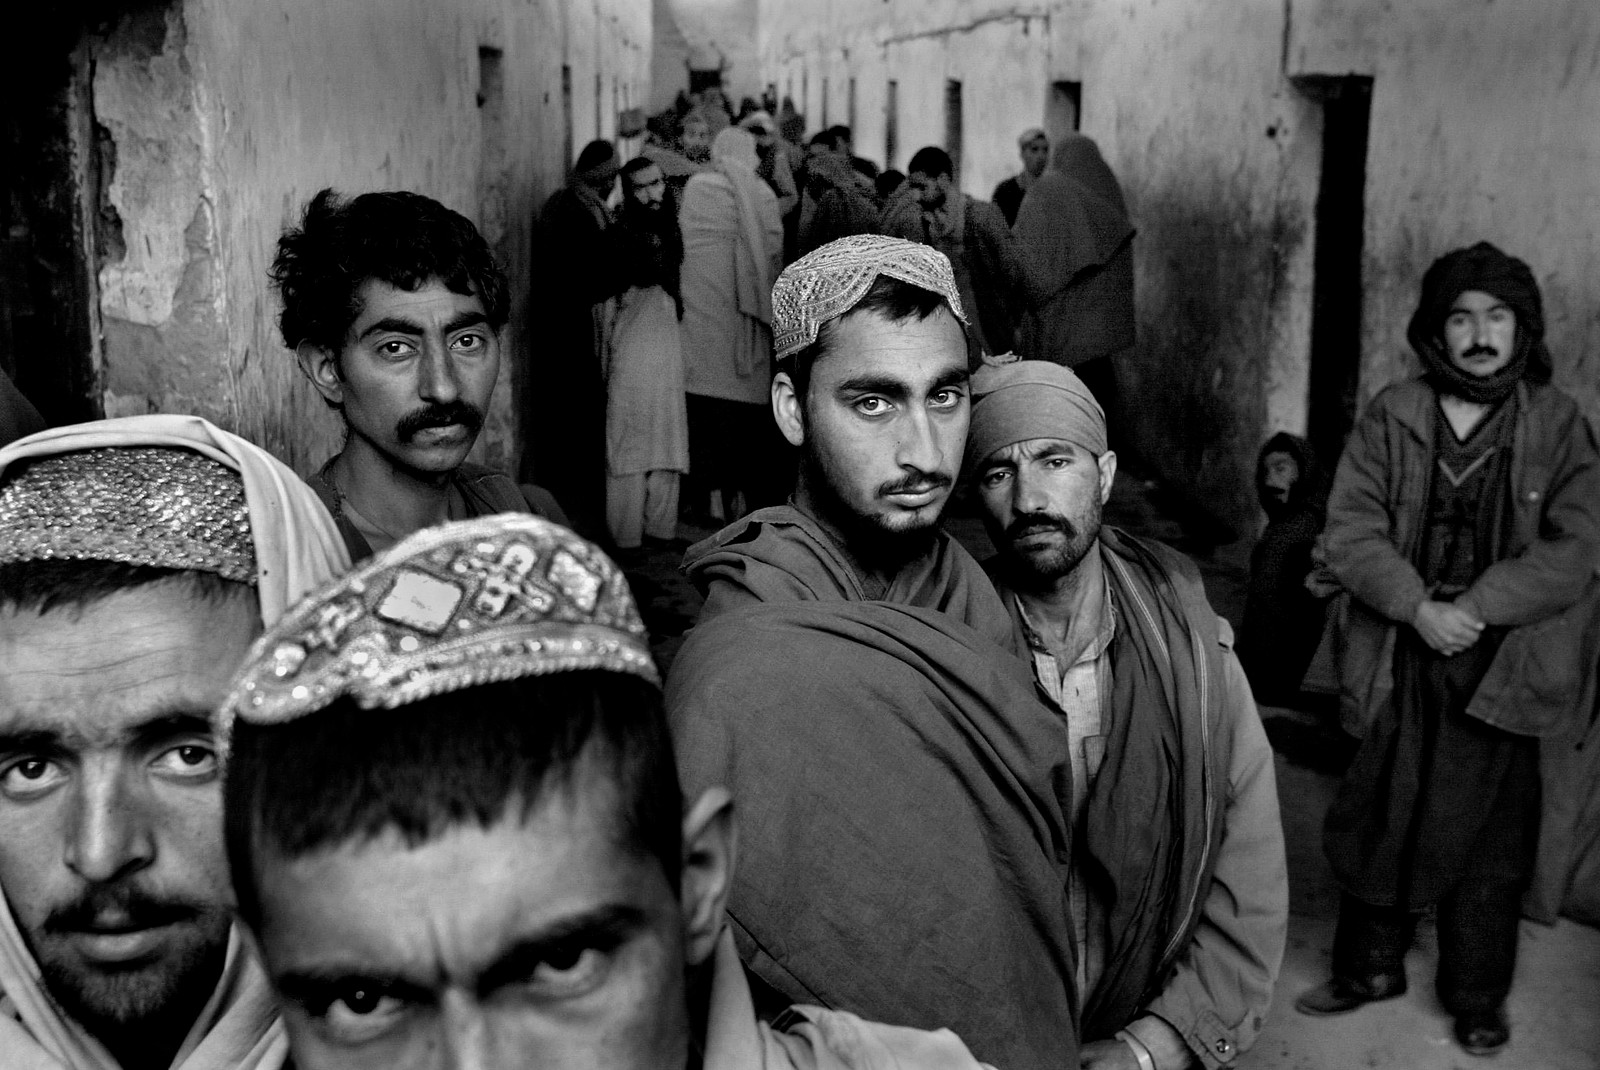 TALIBAN PRISONERS OF WAR